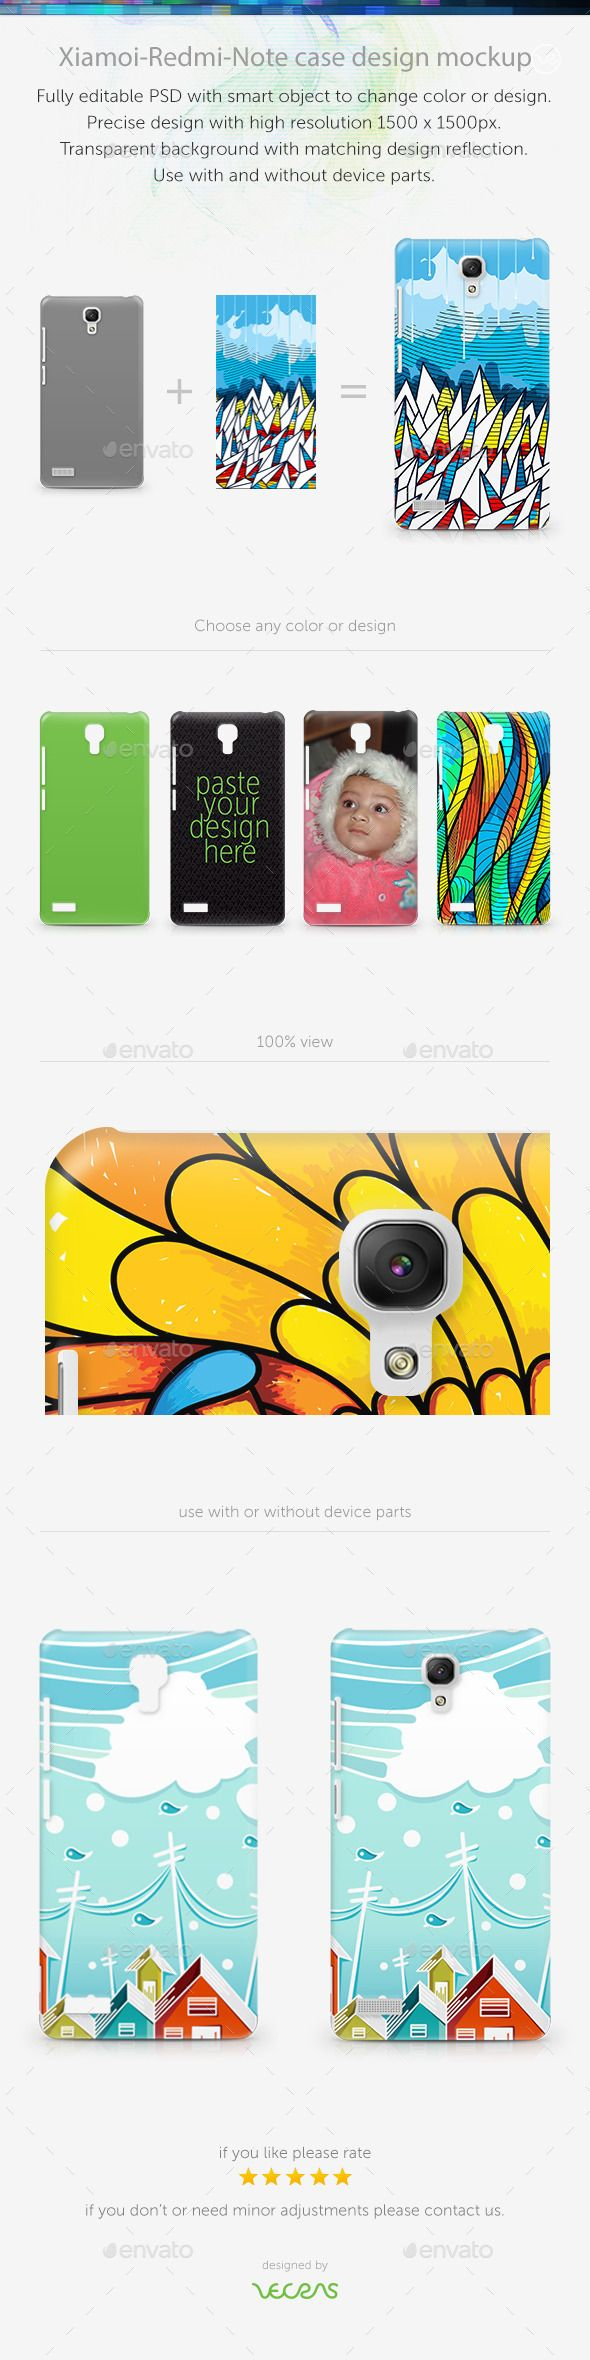 XiamoiRedMiNote Case Design Mockup — Photoshop PSD #mobile #imd case • Available here → https://graphicriver.net/item/xiamoiredminote-case-design-mockup/10565380?ref=pxcr